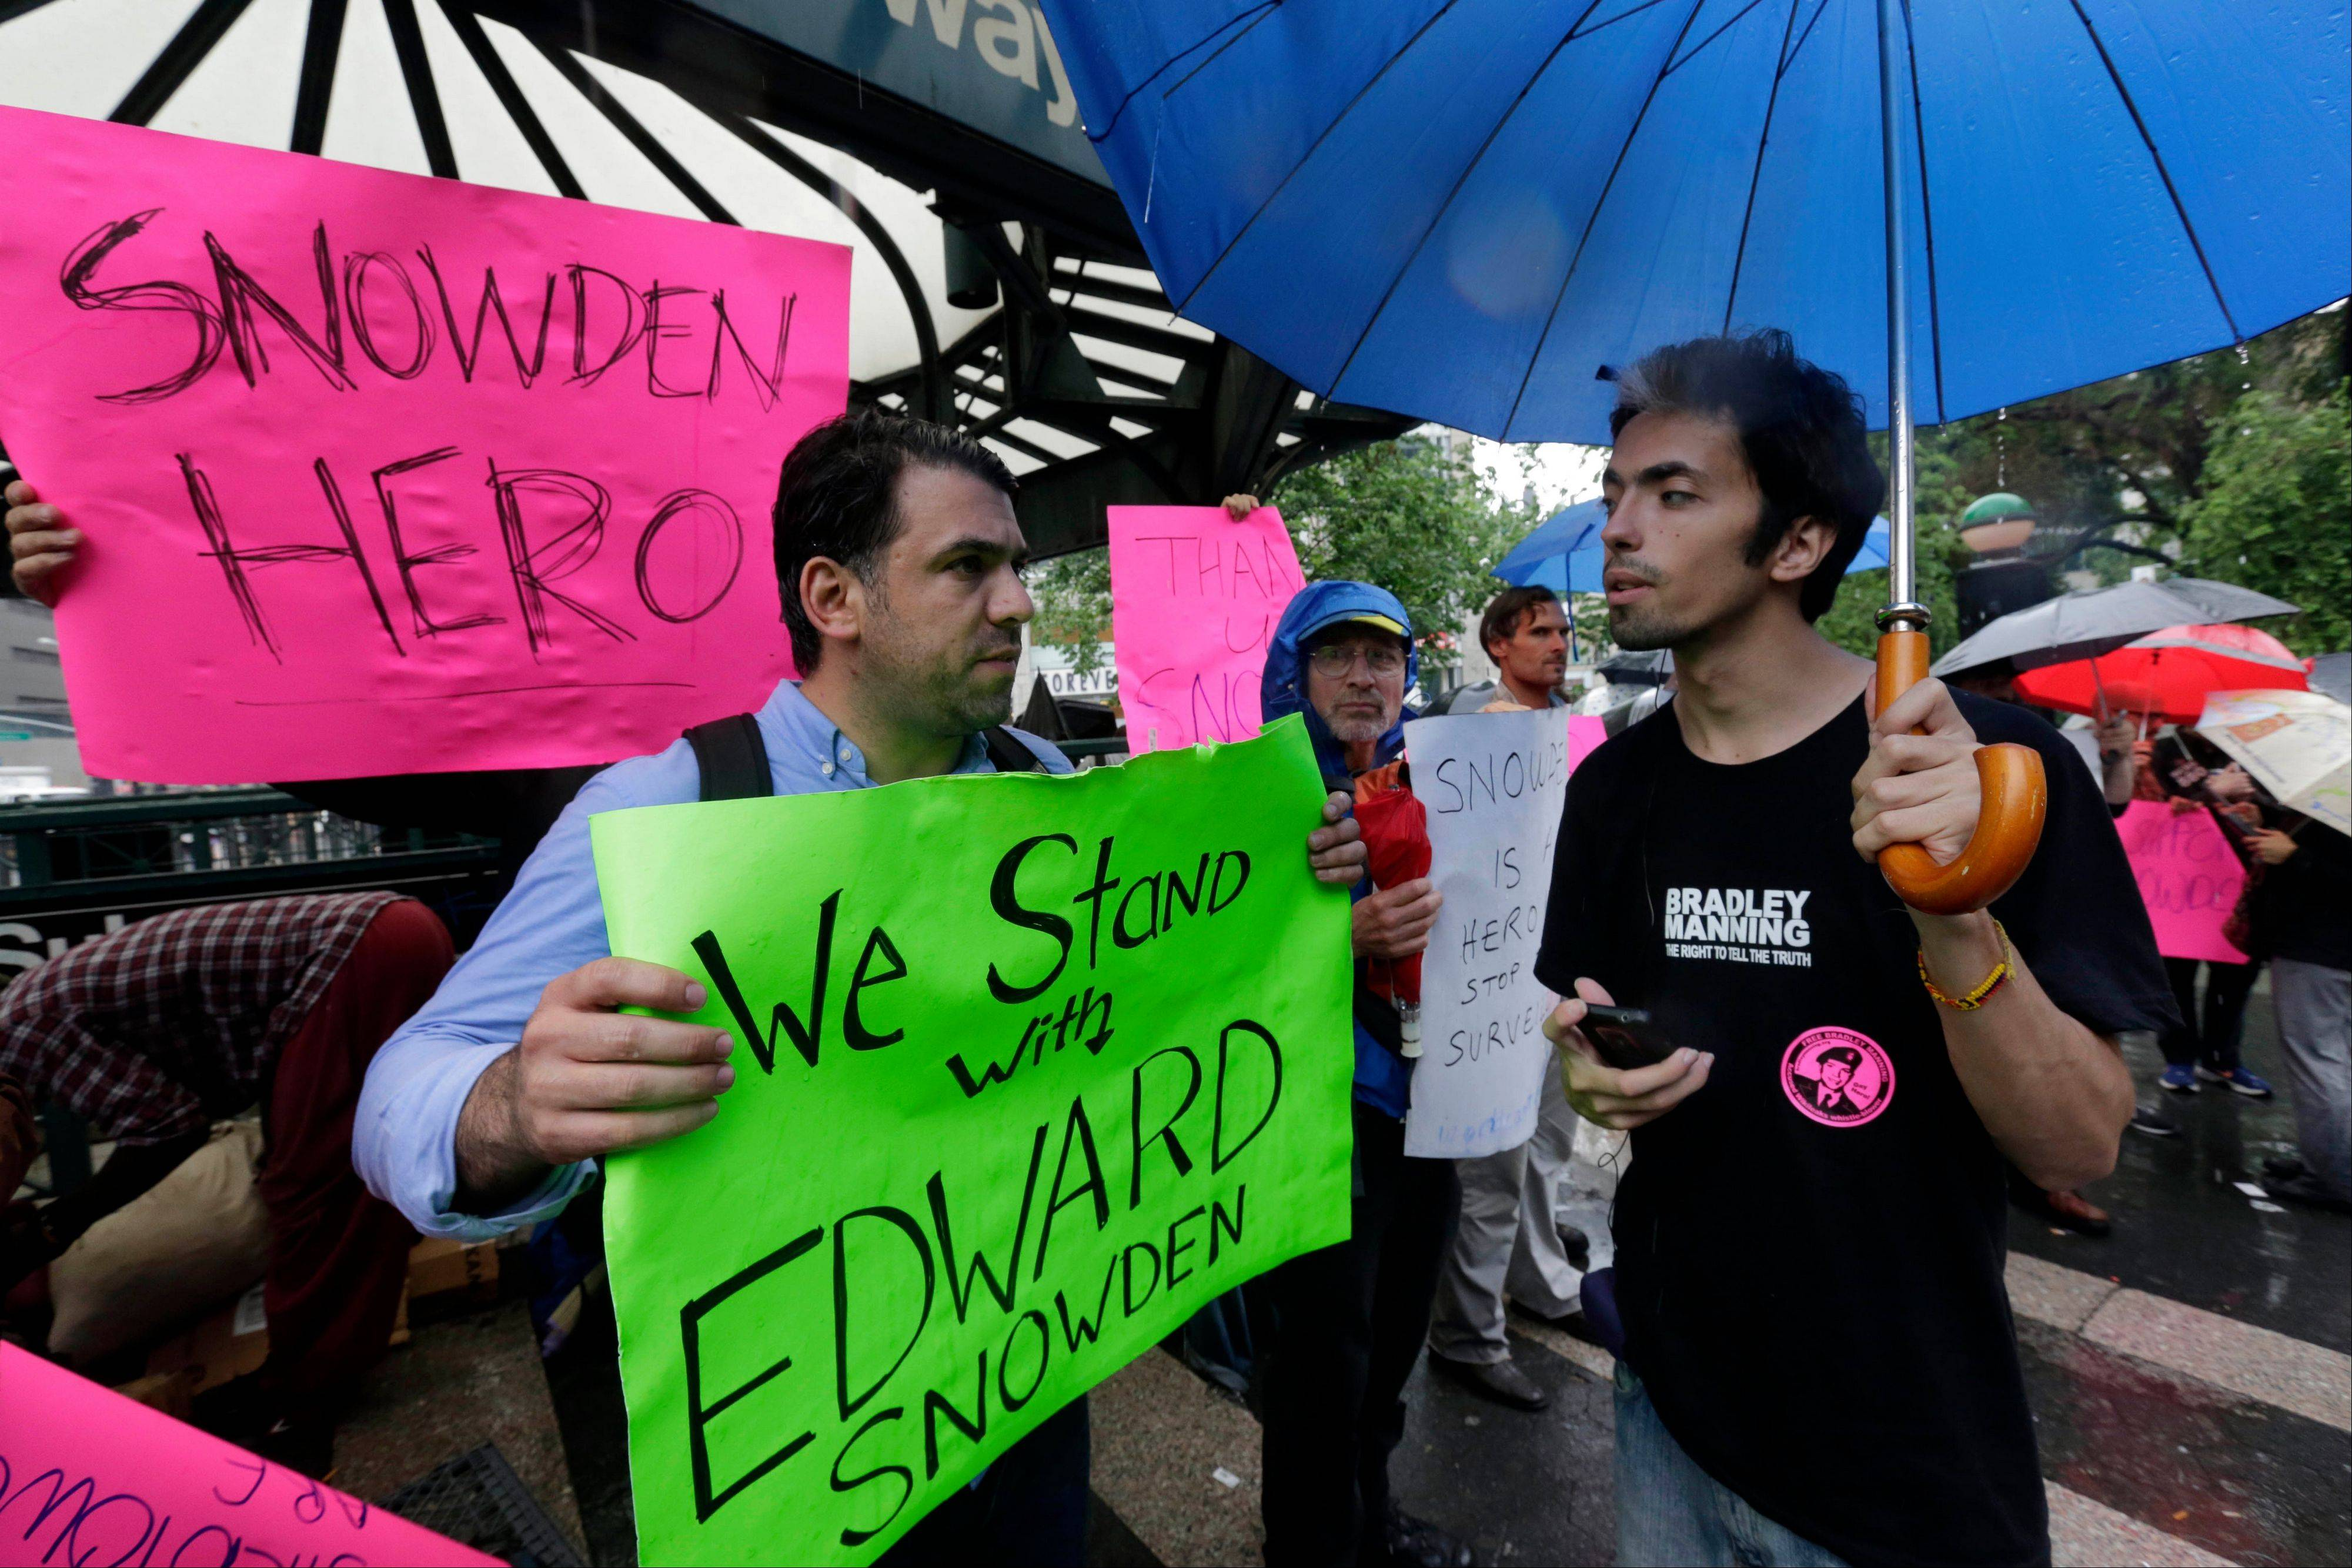 Demonstrators hold signs supporting Edward Snowden in New York's Union Square Park Monday. Snowden, who says he worked as a contractor at the National Security Agency and the CIA, gave classified documents to reporters, making public two sweeping U.S. surveillance programs and touching off a national debate on privacy versus security.